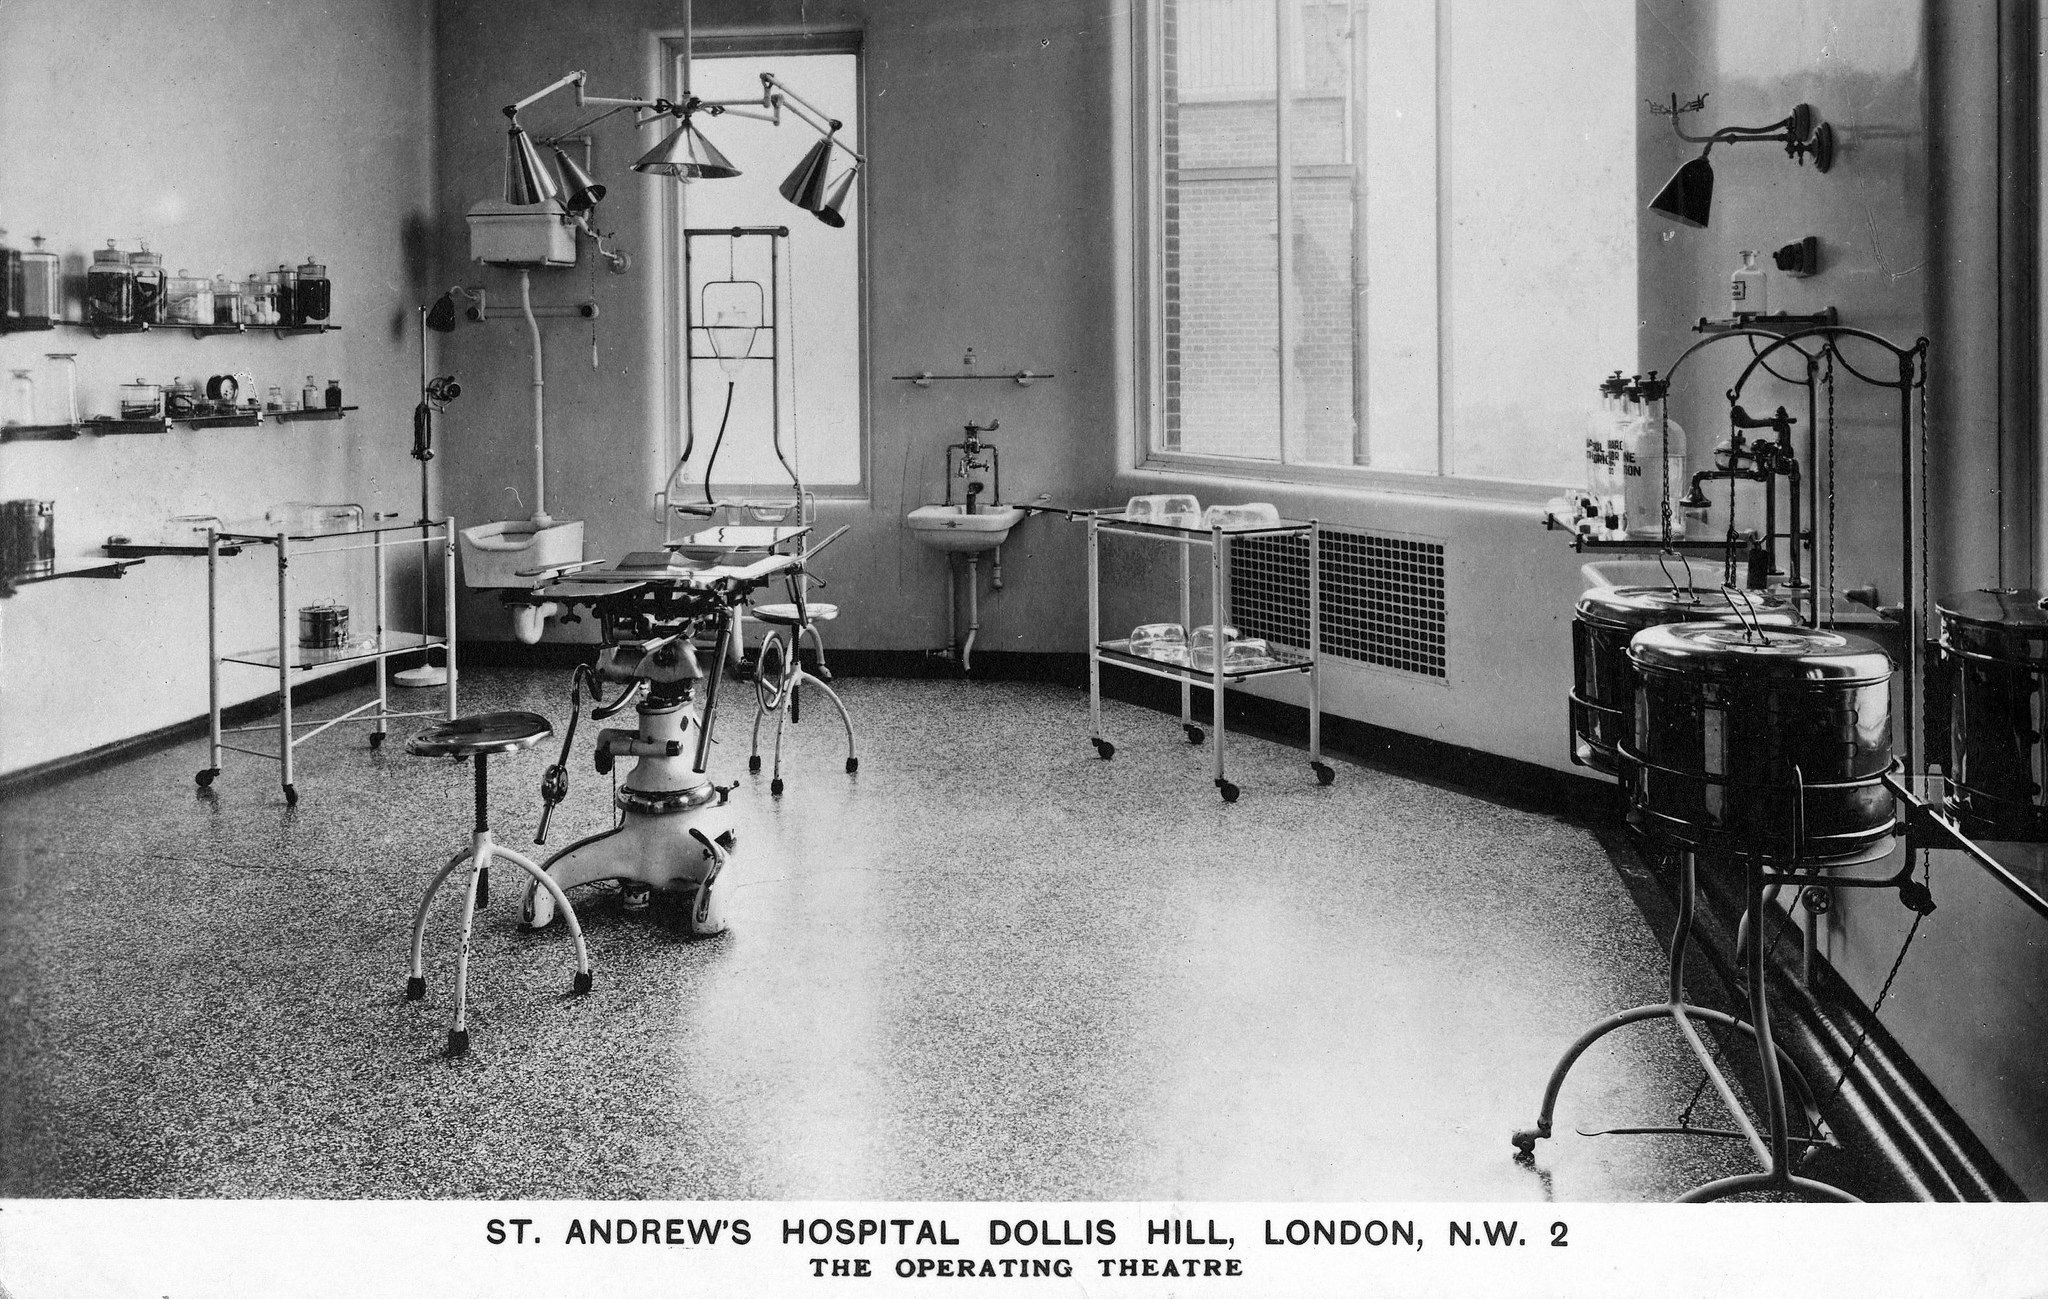 St Andrew's Hospital, Dollis Hill, Operating Theatre c.1925.